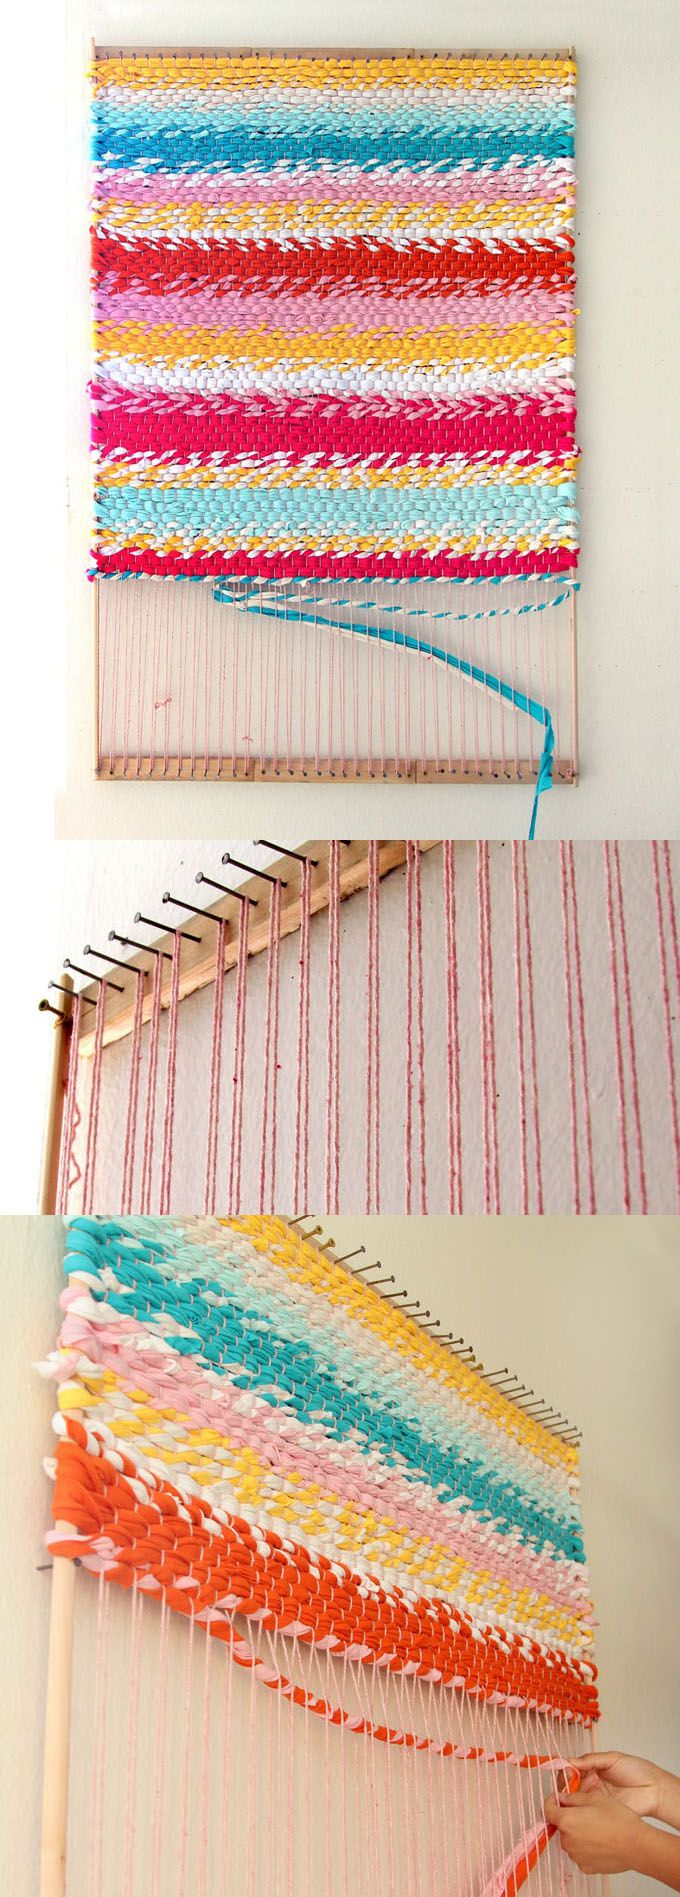 How to build a simple adjustable rug loom and weave a beautiful t-shirt rug or other up-cycled fabric rugs. Detailed tutorial and step by step photos!  - A Piece Of Rainbow http://www.apieceofrainbow.com/weave-t-shirt-rug-diy-loom/